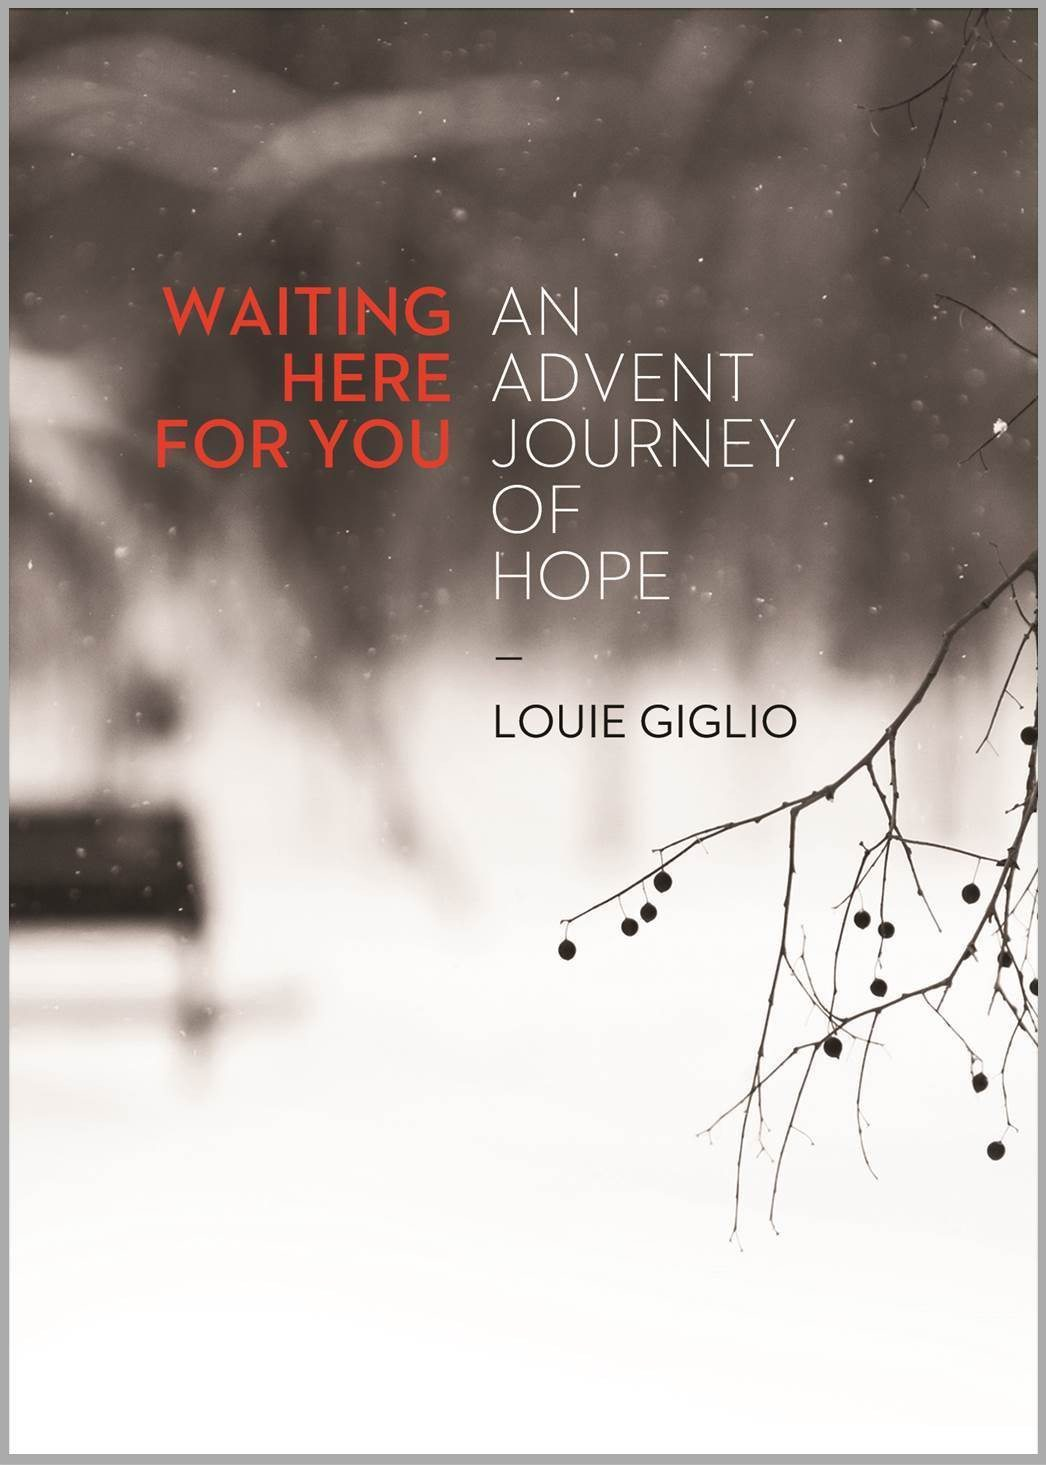 Louie Giglio - Waiting Here For You: An Advent Journey of Hope ...